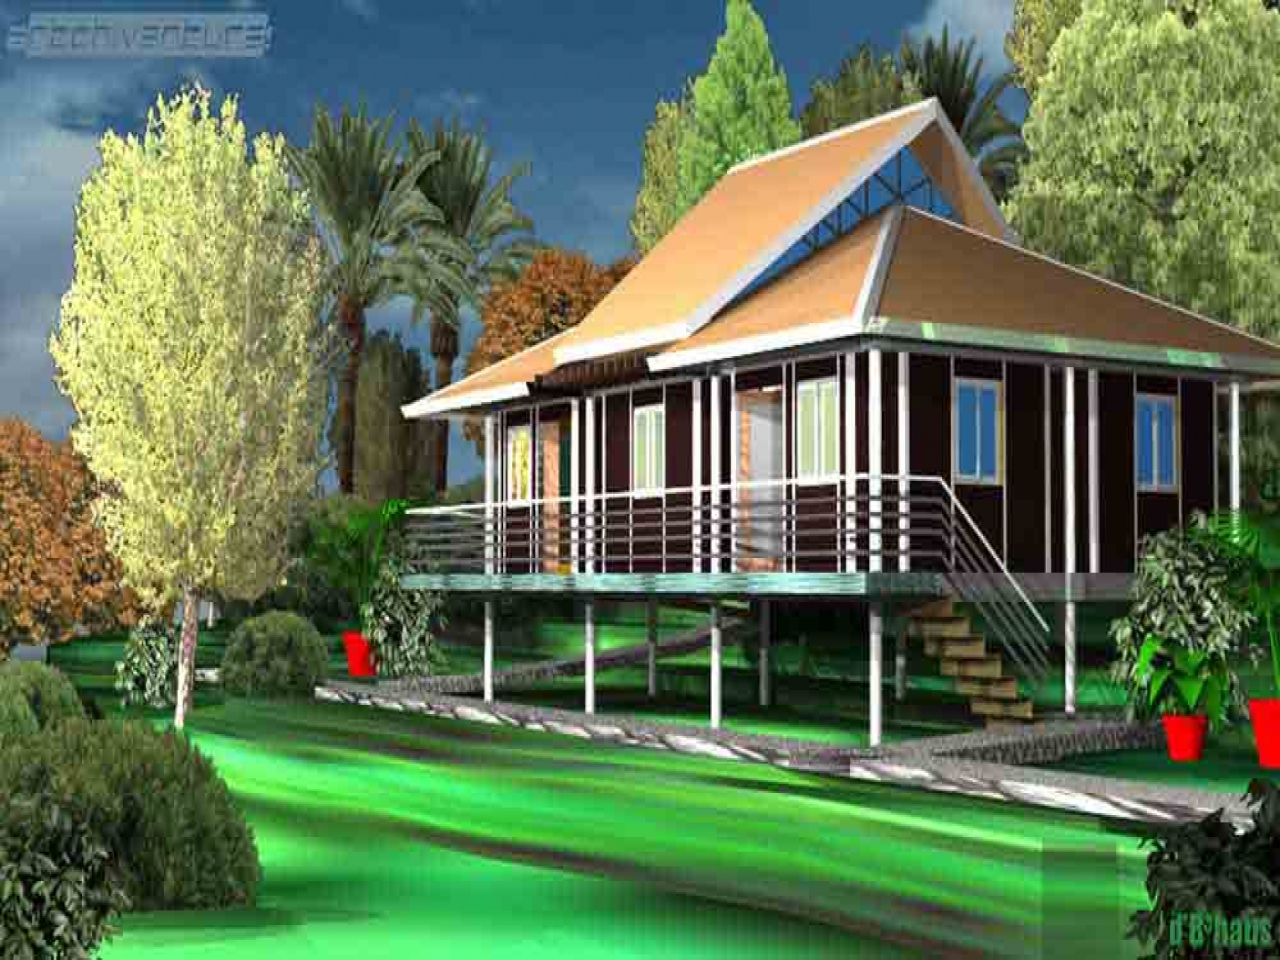 Story House Designs Tropical on vietnamese house design, mission style house design, box type house design, simple cheap house design, philippines house design, food house design, apartment design, apple house design, simple small house design, wood house design, bamboo house design, amakan house design, rest house design, living room design, modern bahay kubo design, fishing house design, native house design, sports house design, modern house design, shingle style house design,